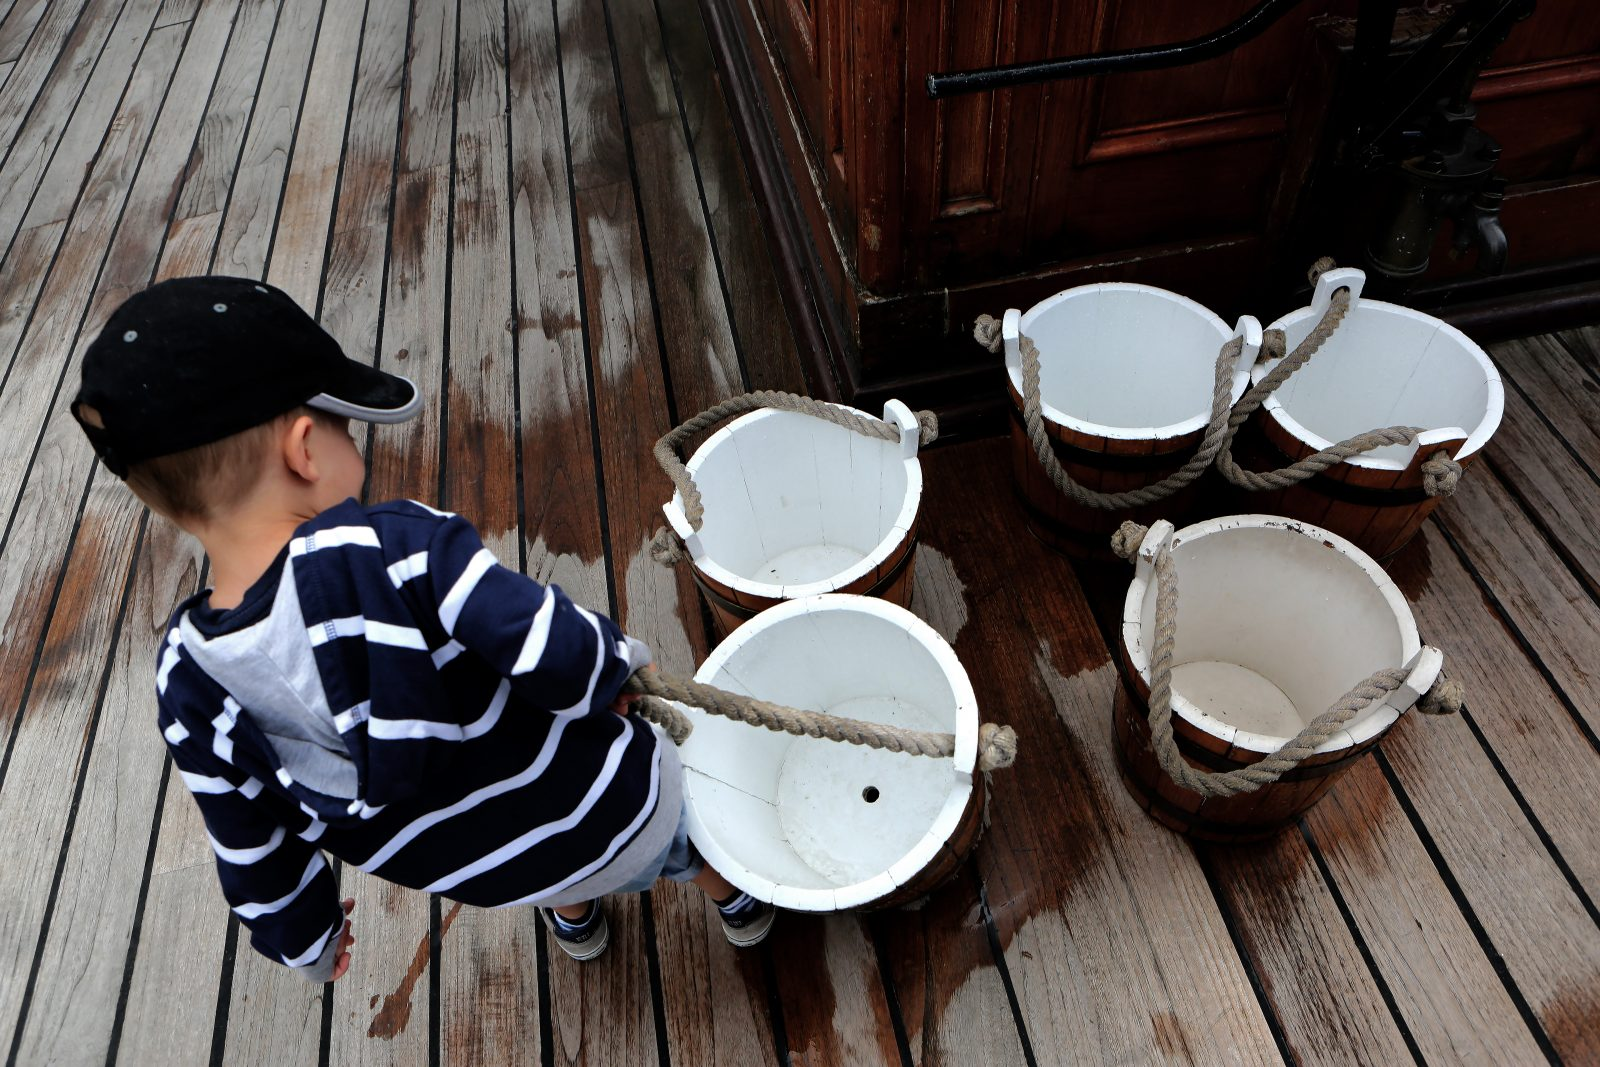 Matey Carrying Water Buckets on Cutty Sark